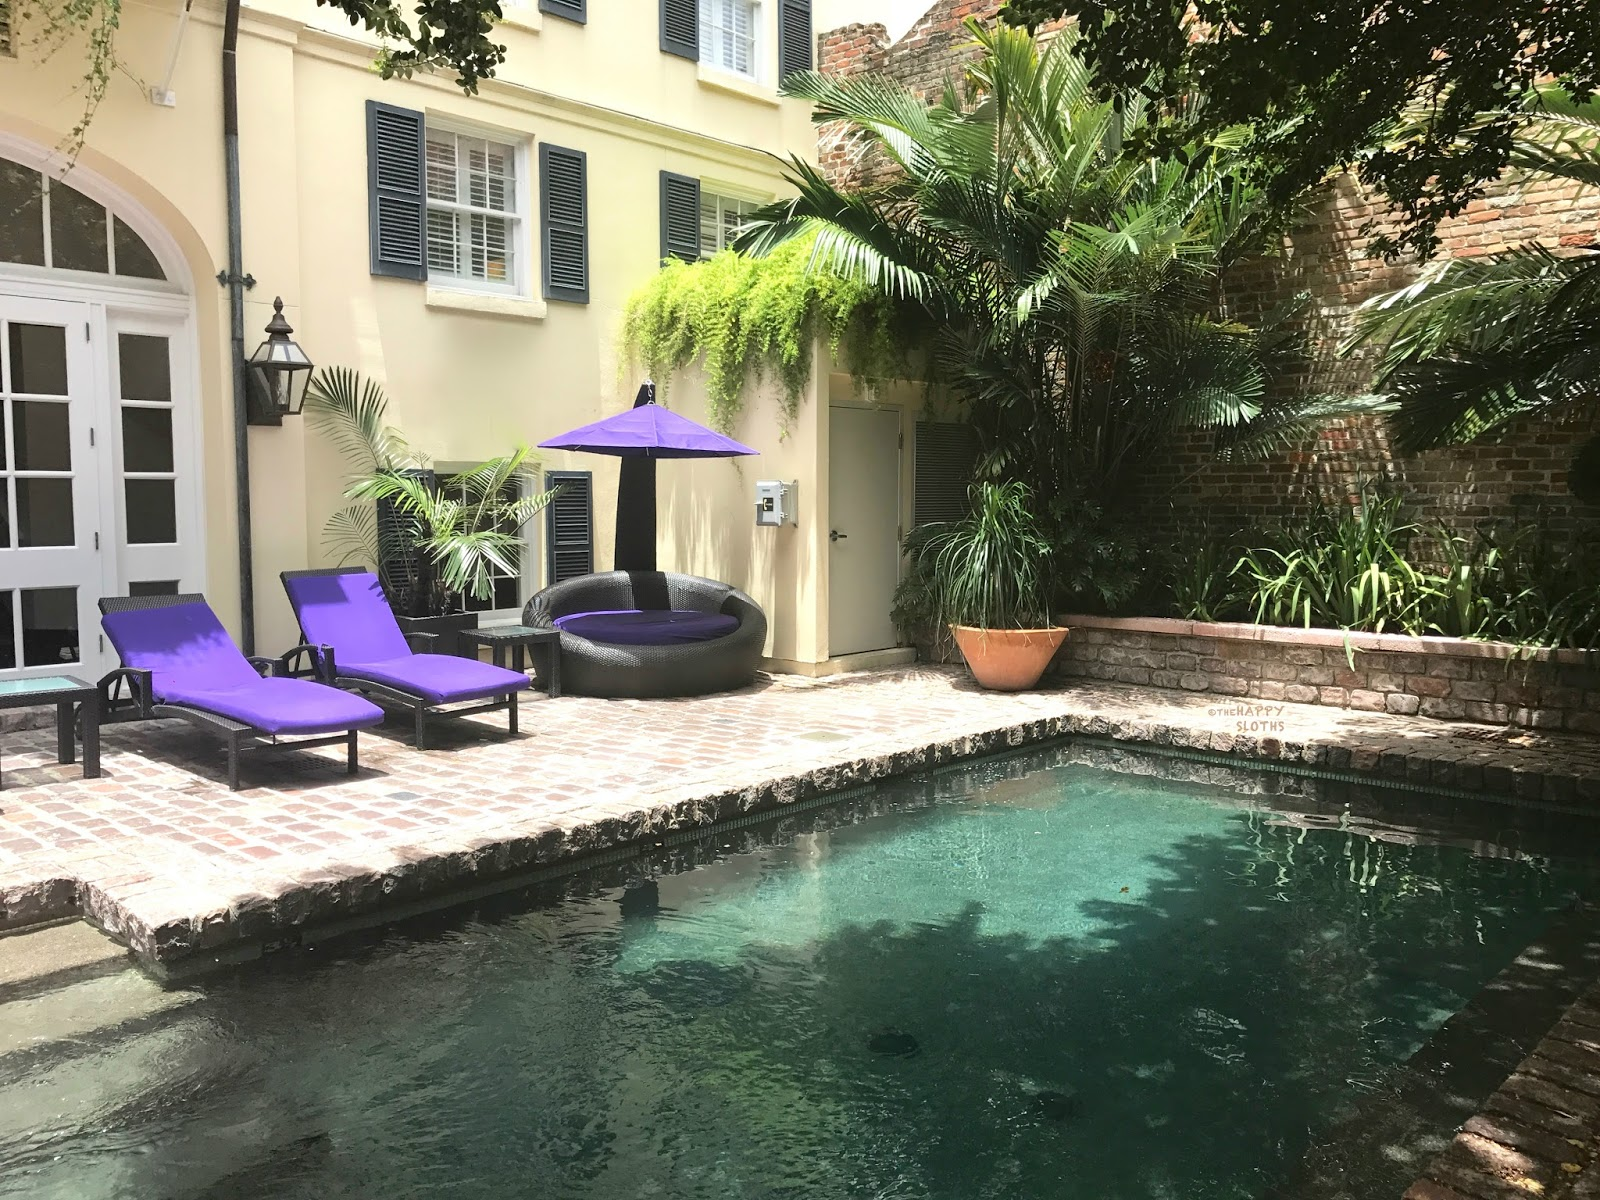 Hotel Le Marais New Orleans Review | Pool